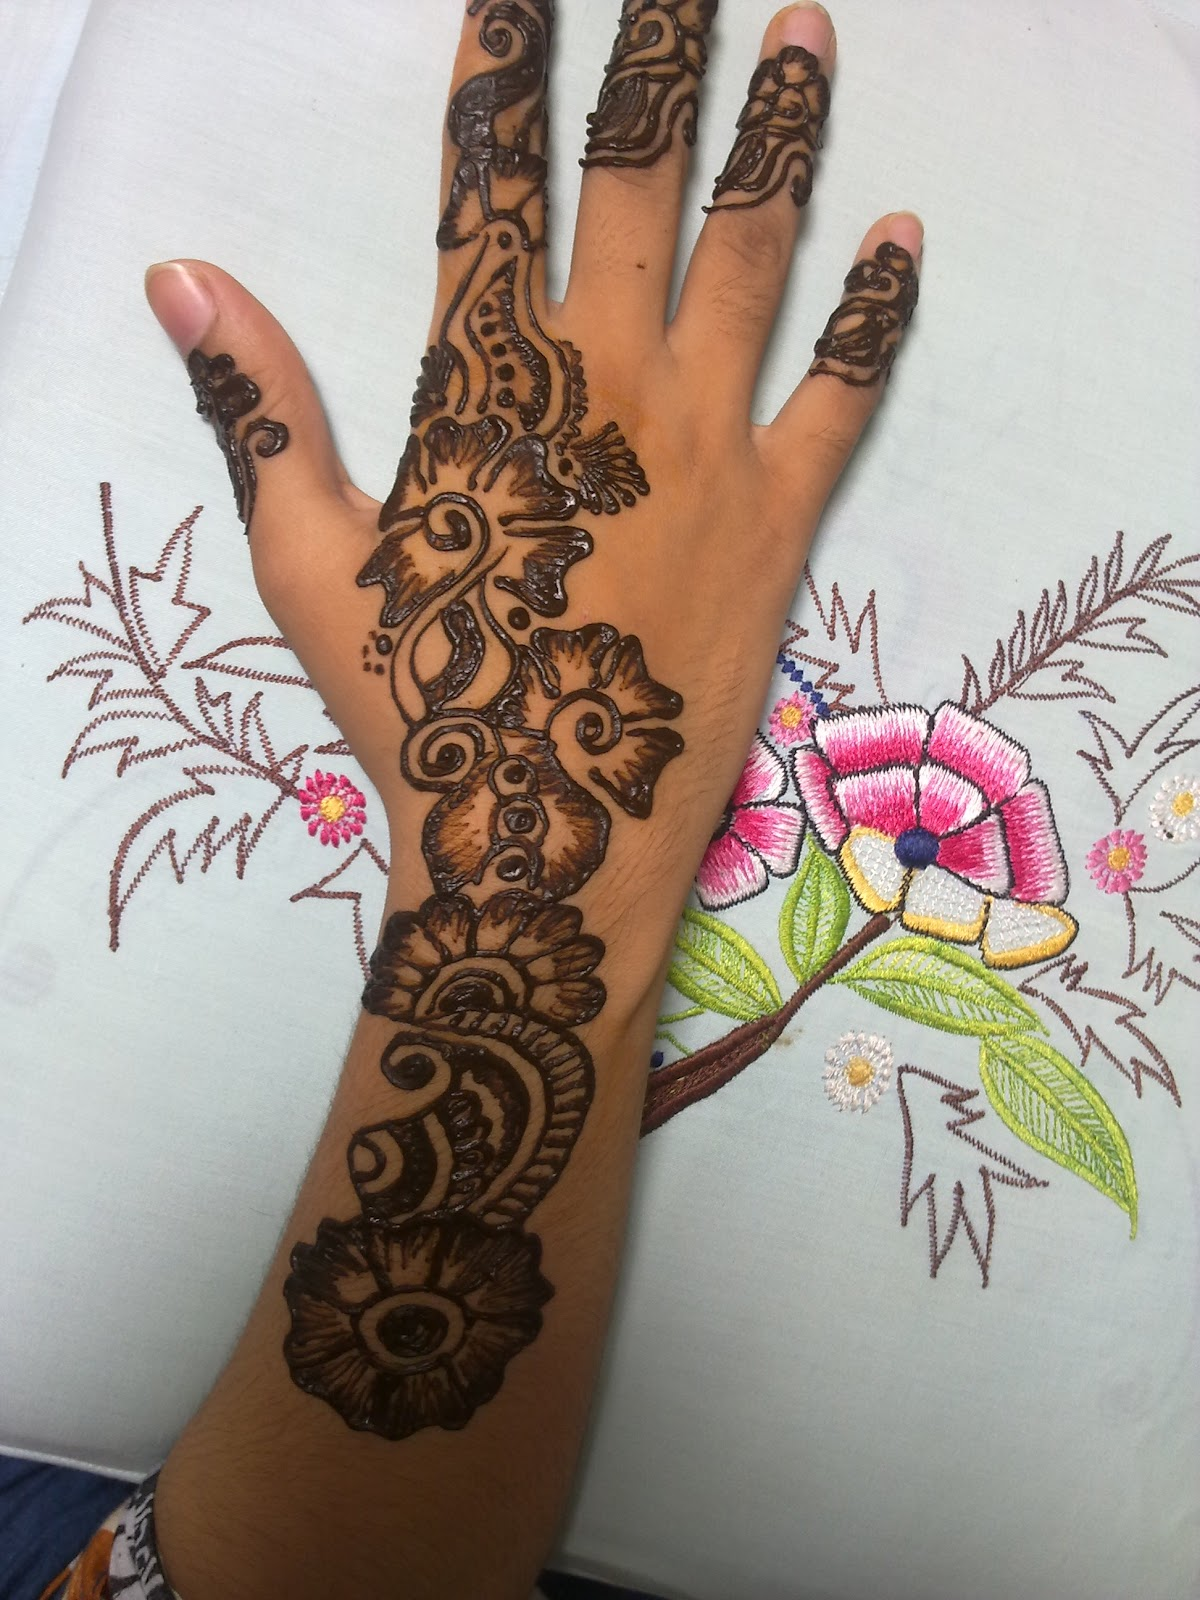 Latest Henna Mehndi Design : Mehndi designs for hands latest arabic